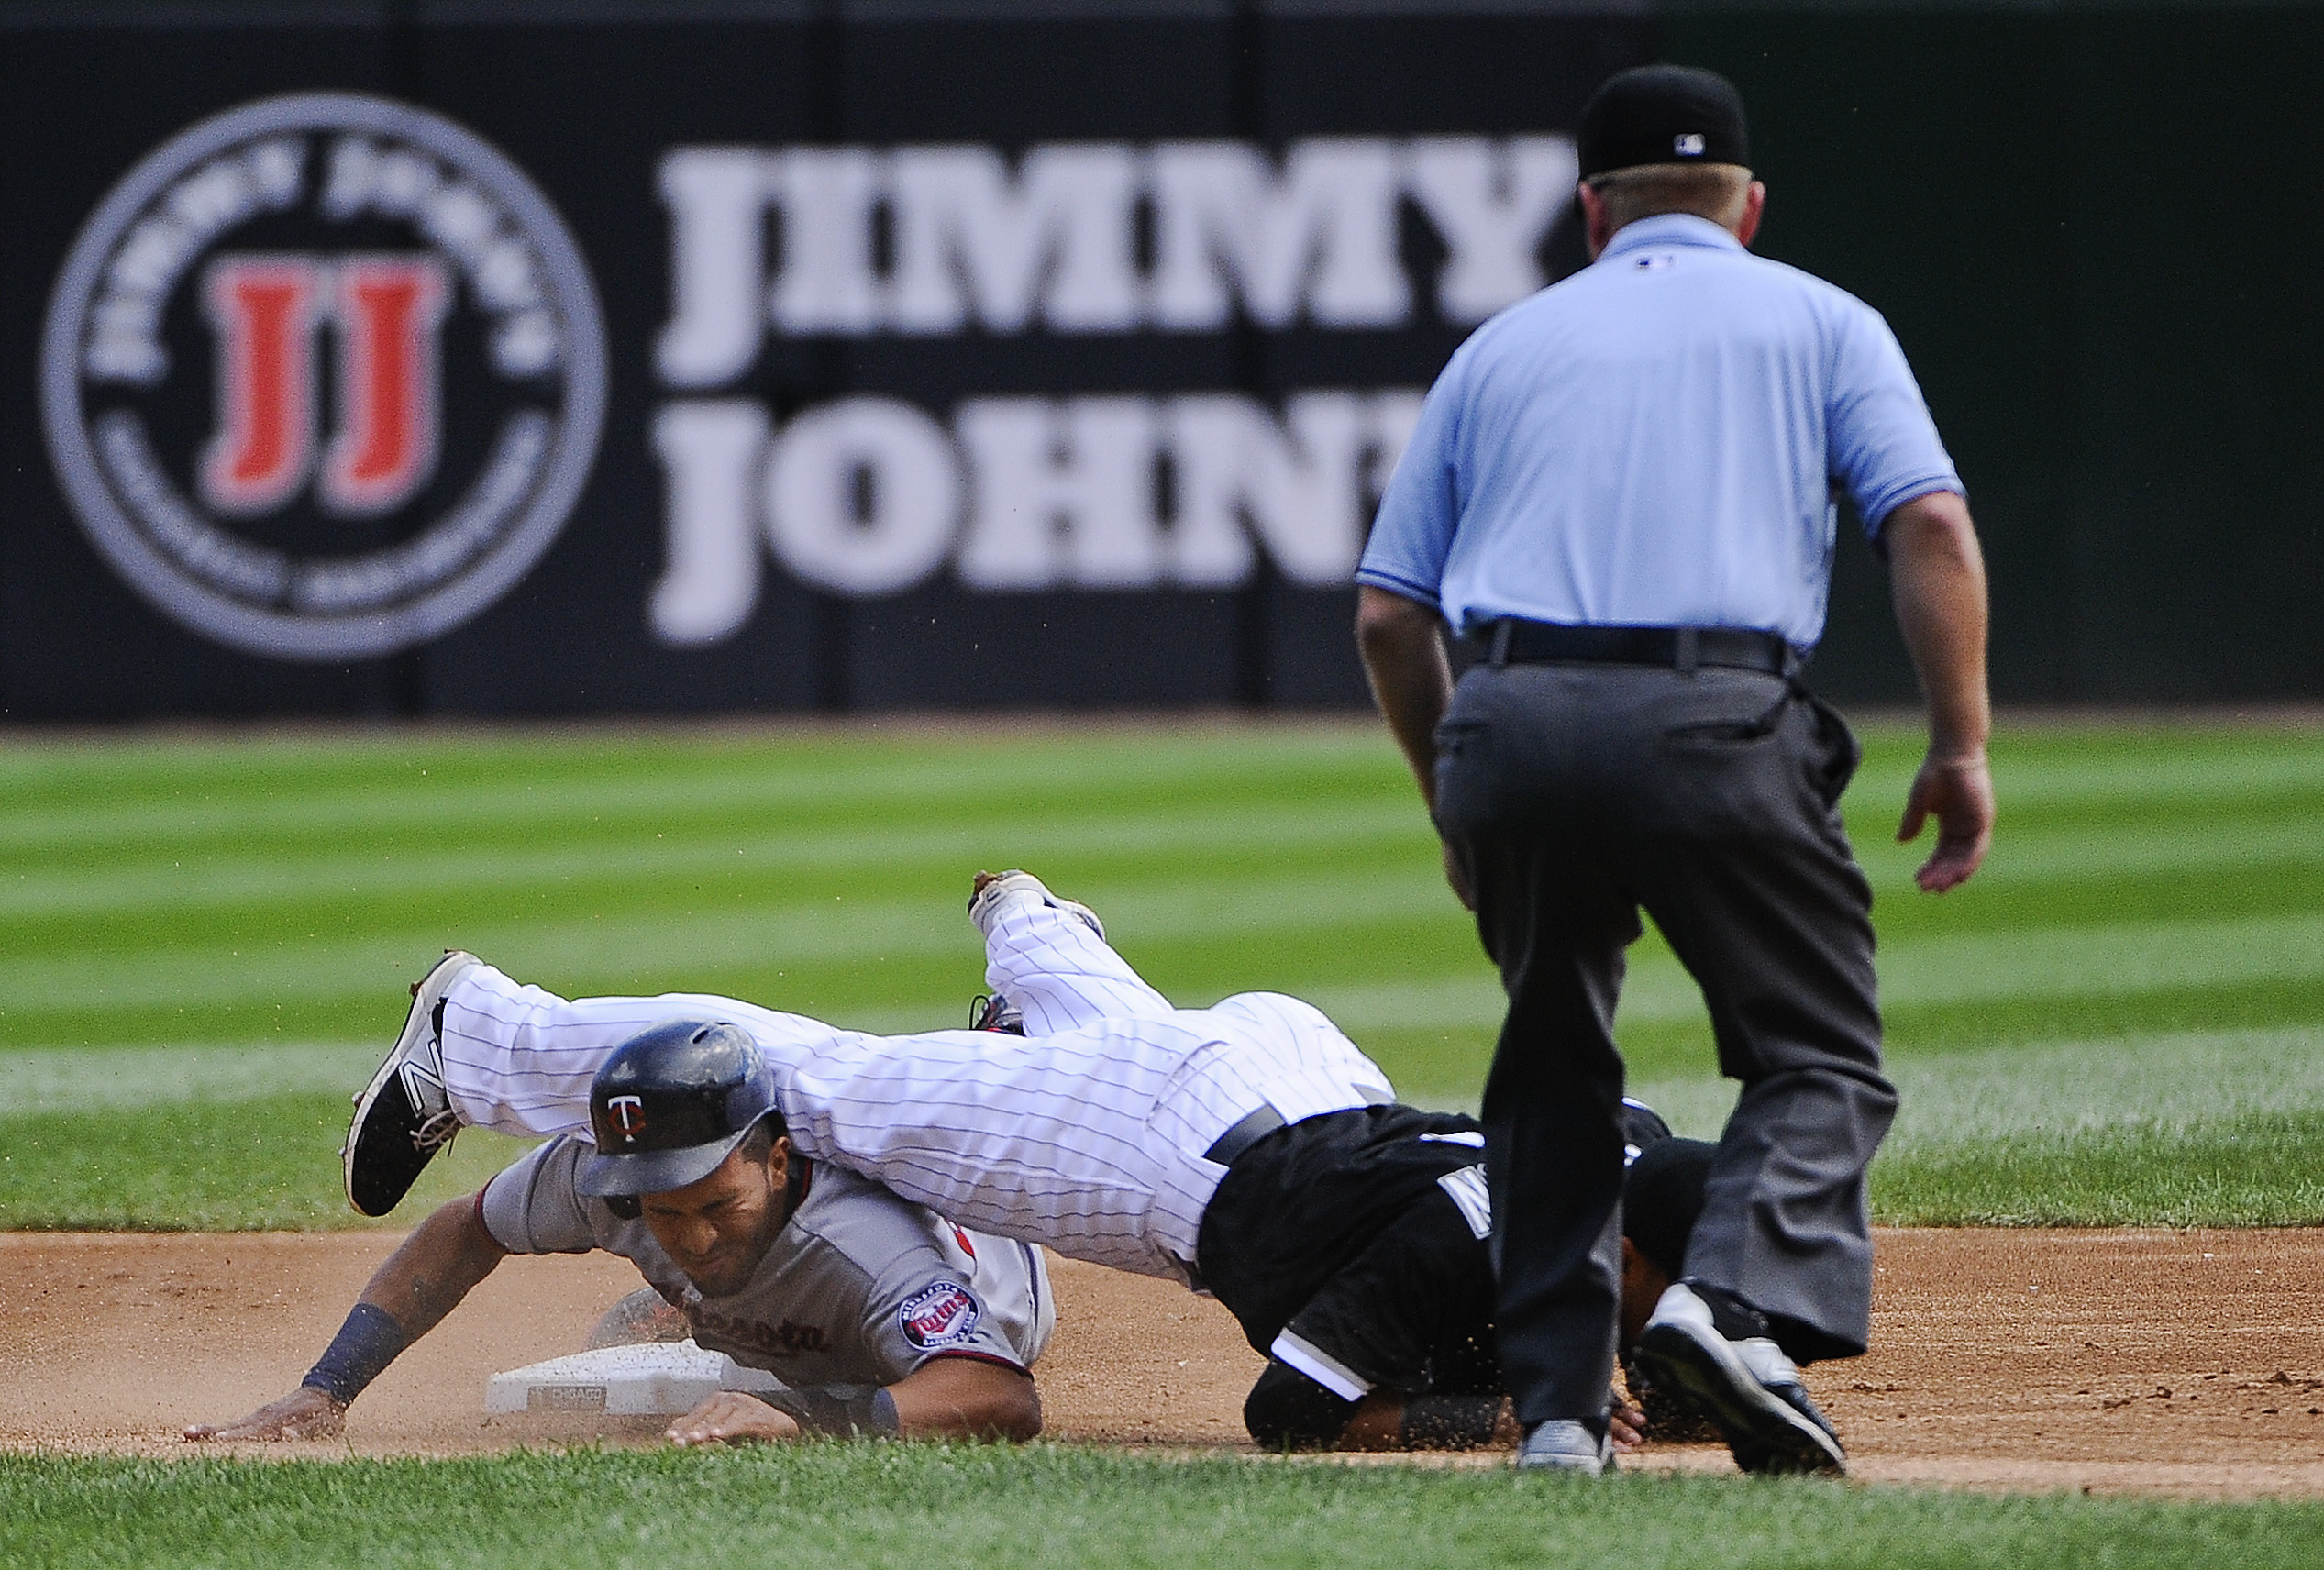 Minnesota Twins Eddie Rosario, left,  is caught settling second base by Chicago White Sox second baseman Micah Johnson in the first inning of a baseball game on Sunday, Sept. 13, 2015, in Chicago. (AP Photo/Matt Marton)